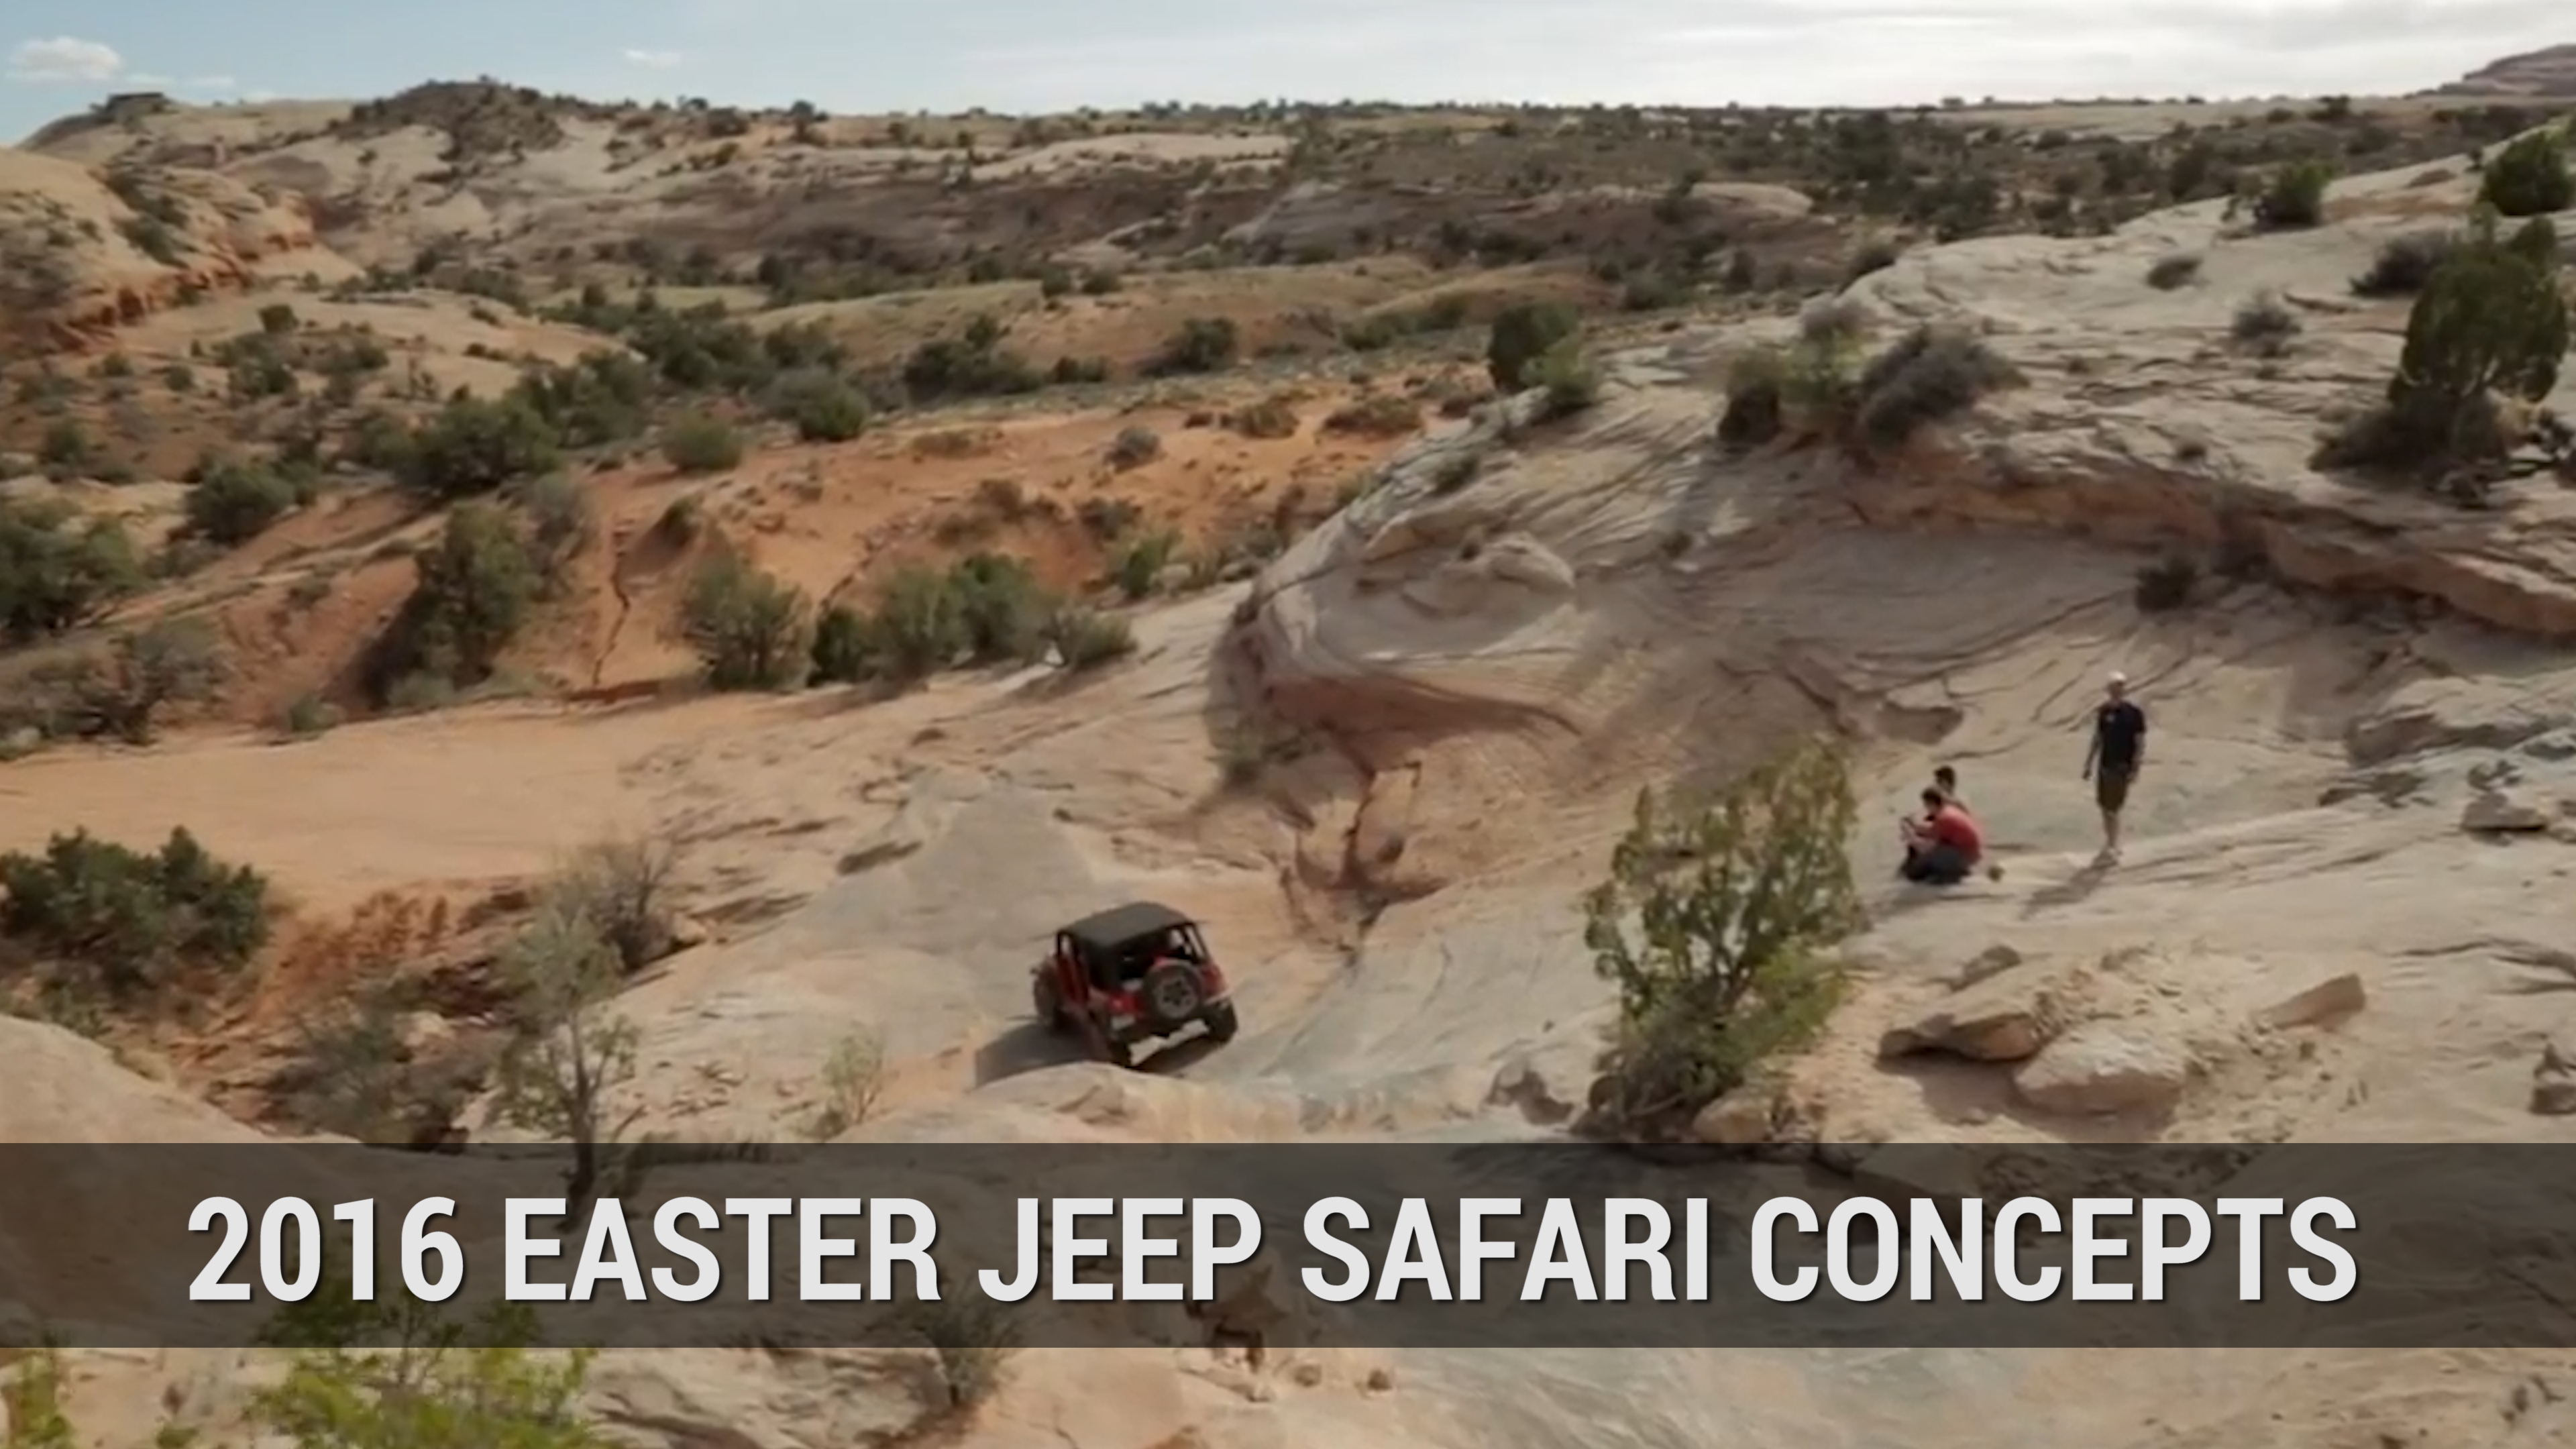 Easter Jeep Safari Concepts | Autoblog Mintue